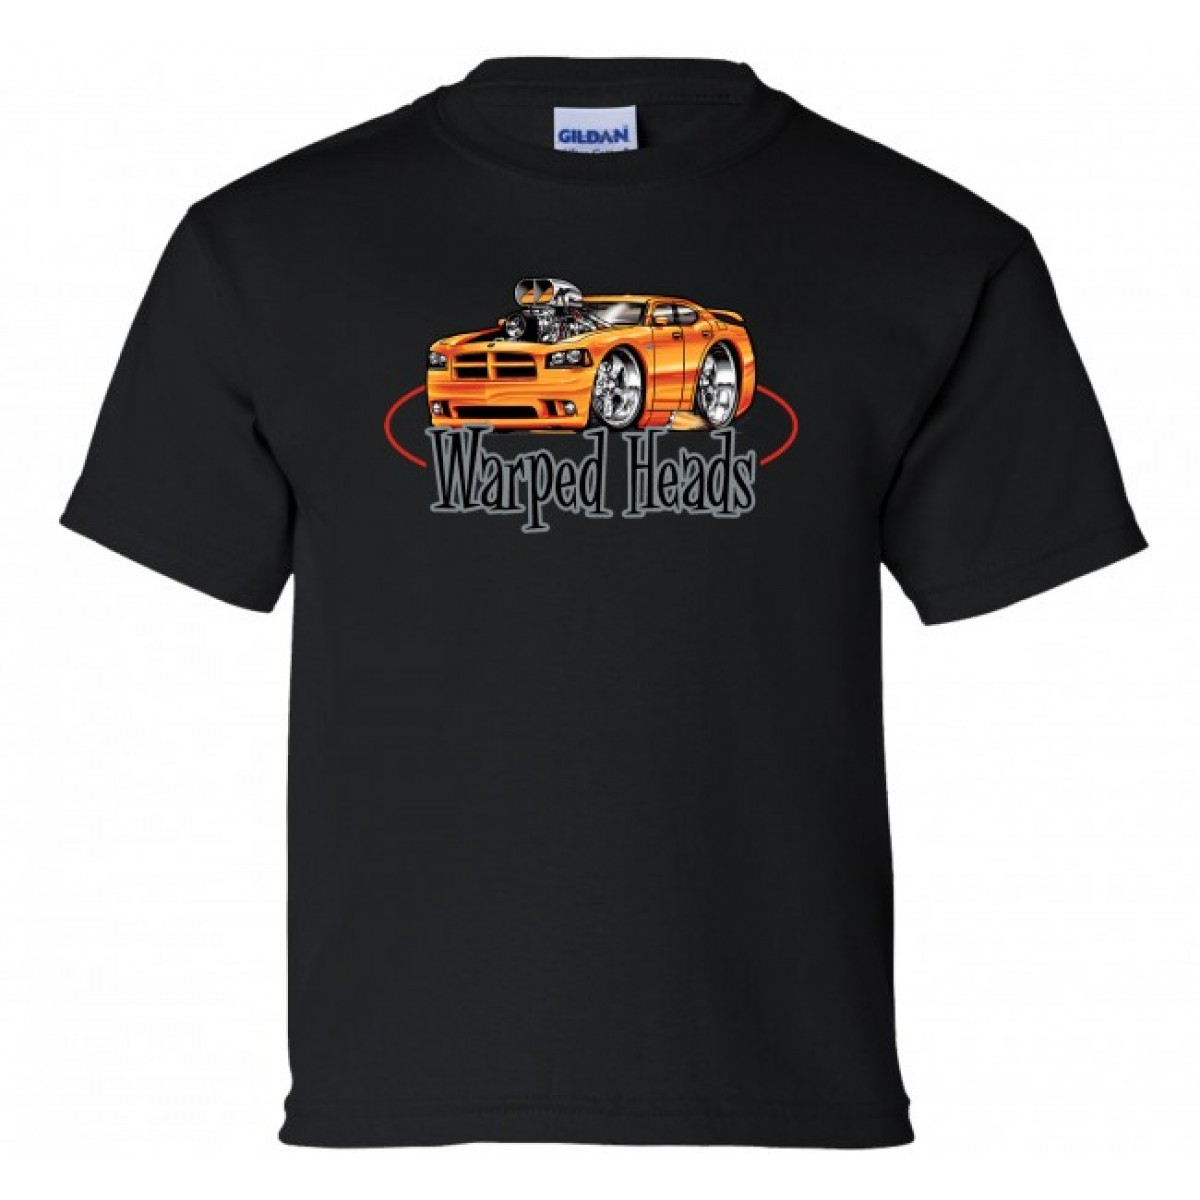 06 Dodge Charger Warped Heads Youth T Shirt